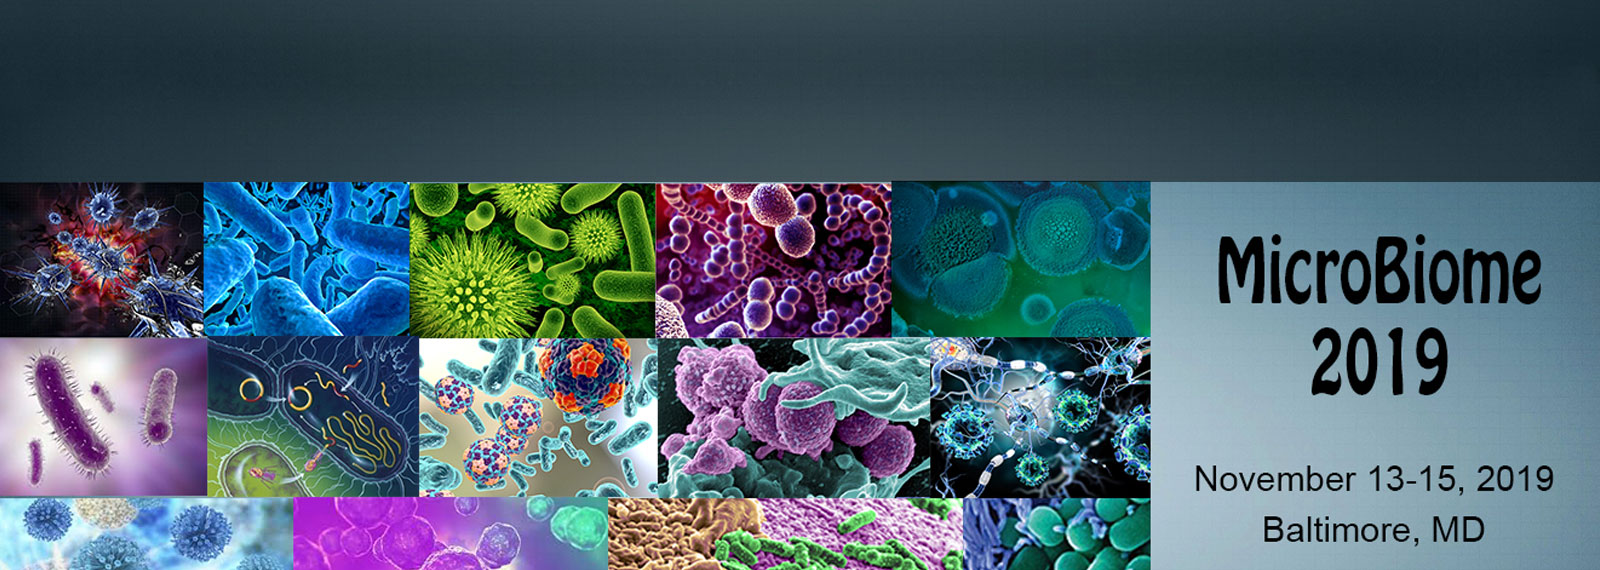 Microbial Research and Applications Conference 2019| Microbial